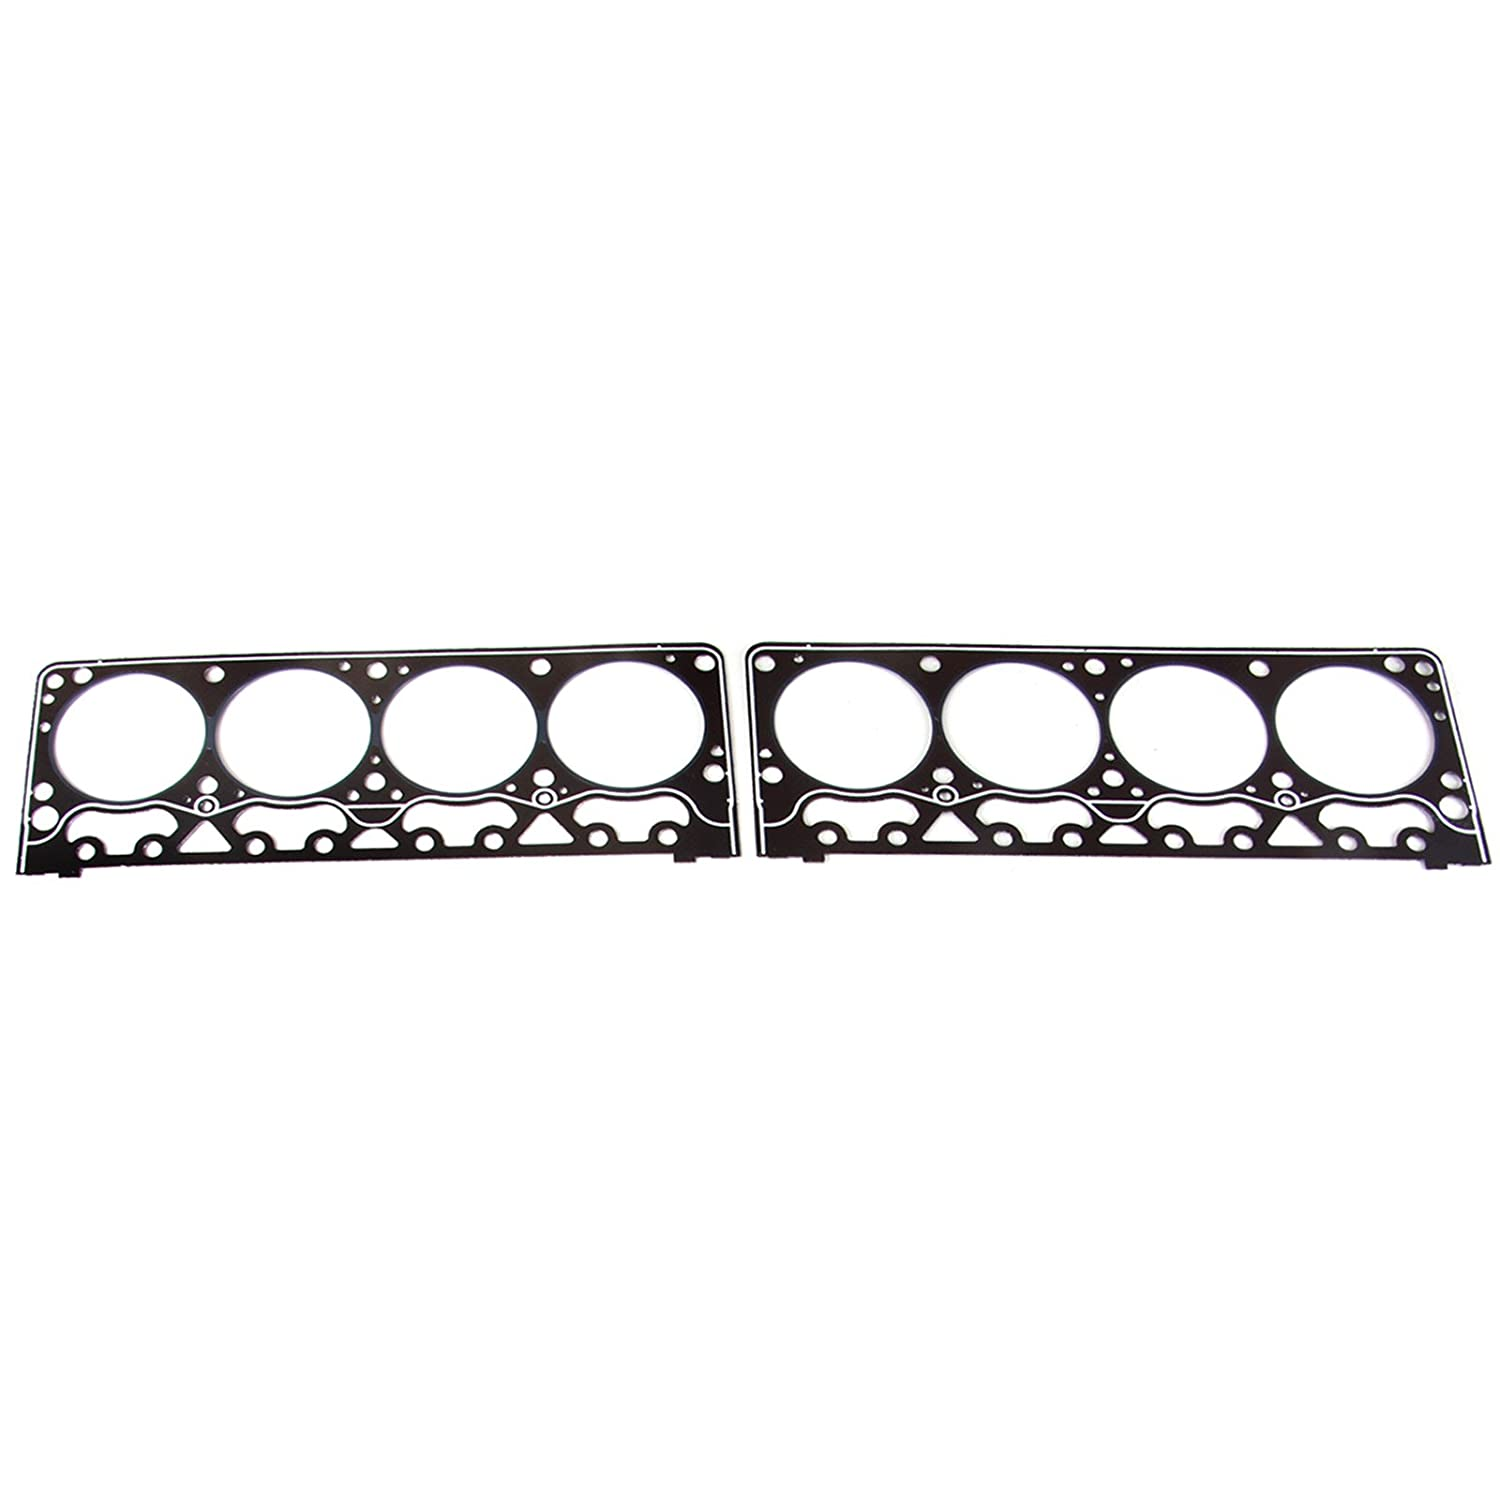 ECCPP Head Gasket Set for 99-01 Dodge Ram 1500 5.2L V8 OHV VIN Y 12V Engine Head Gaskets Kit